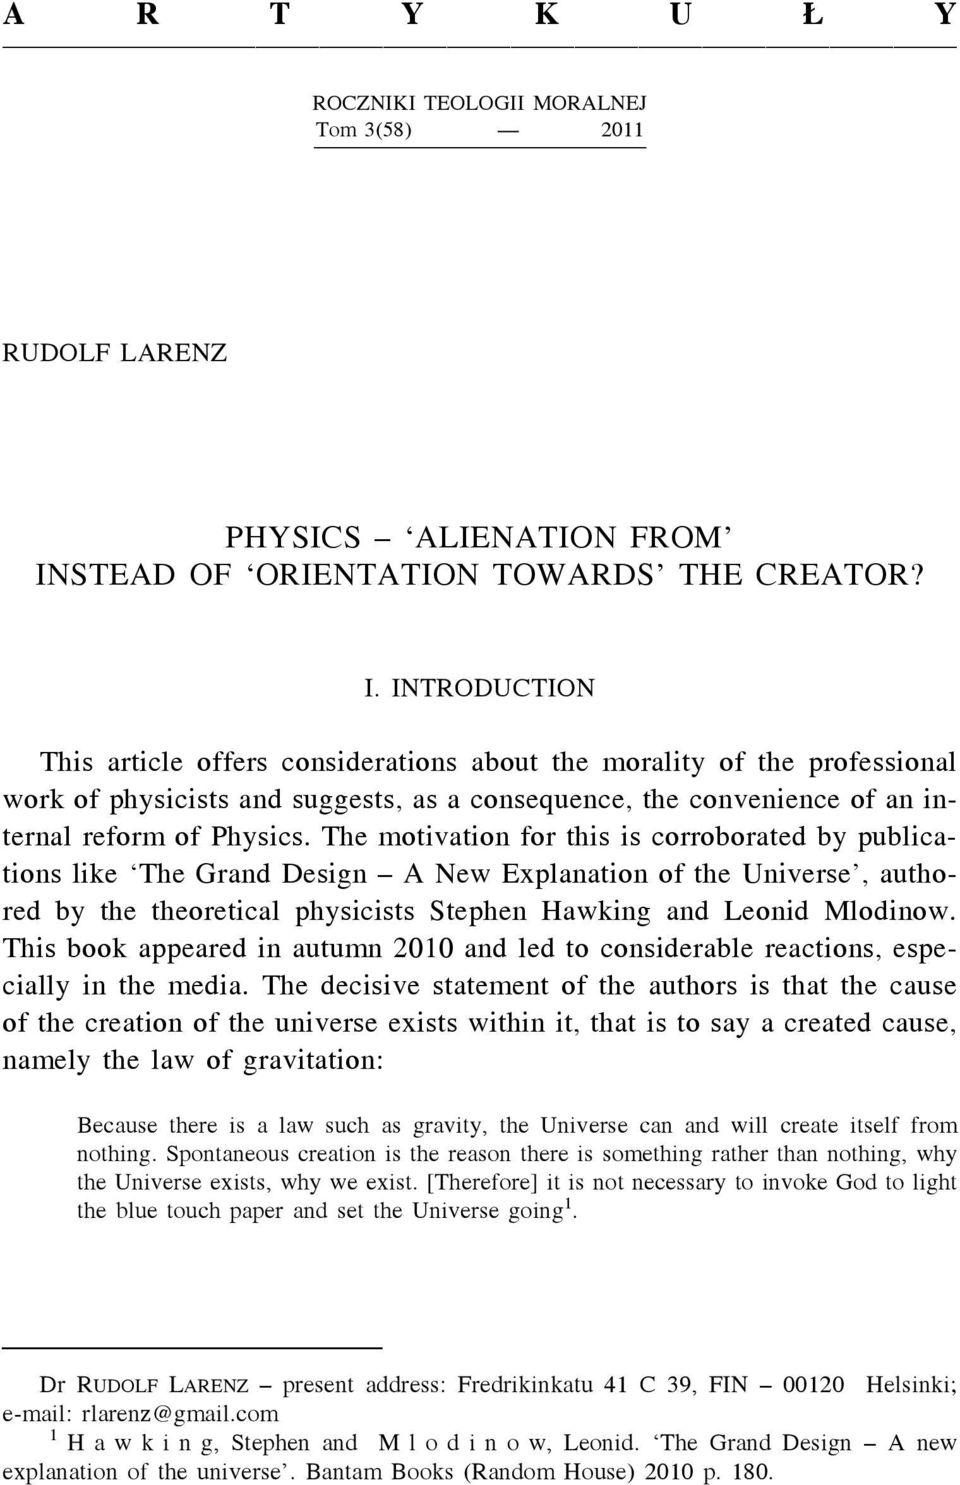 INTRODUCTION This article offers considerations about the morality of the professional work of physicists and suggests, as a consequence, the convenience of an internal reform of Physics.